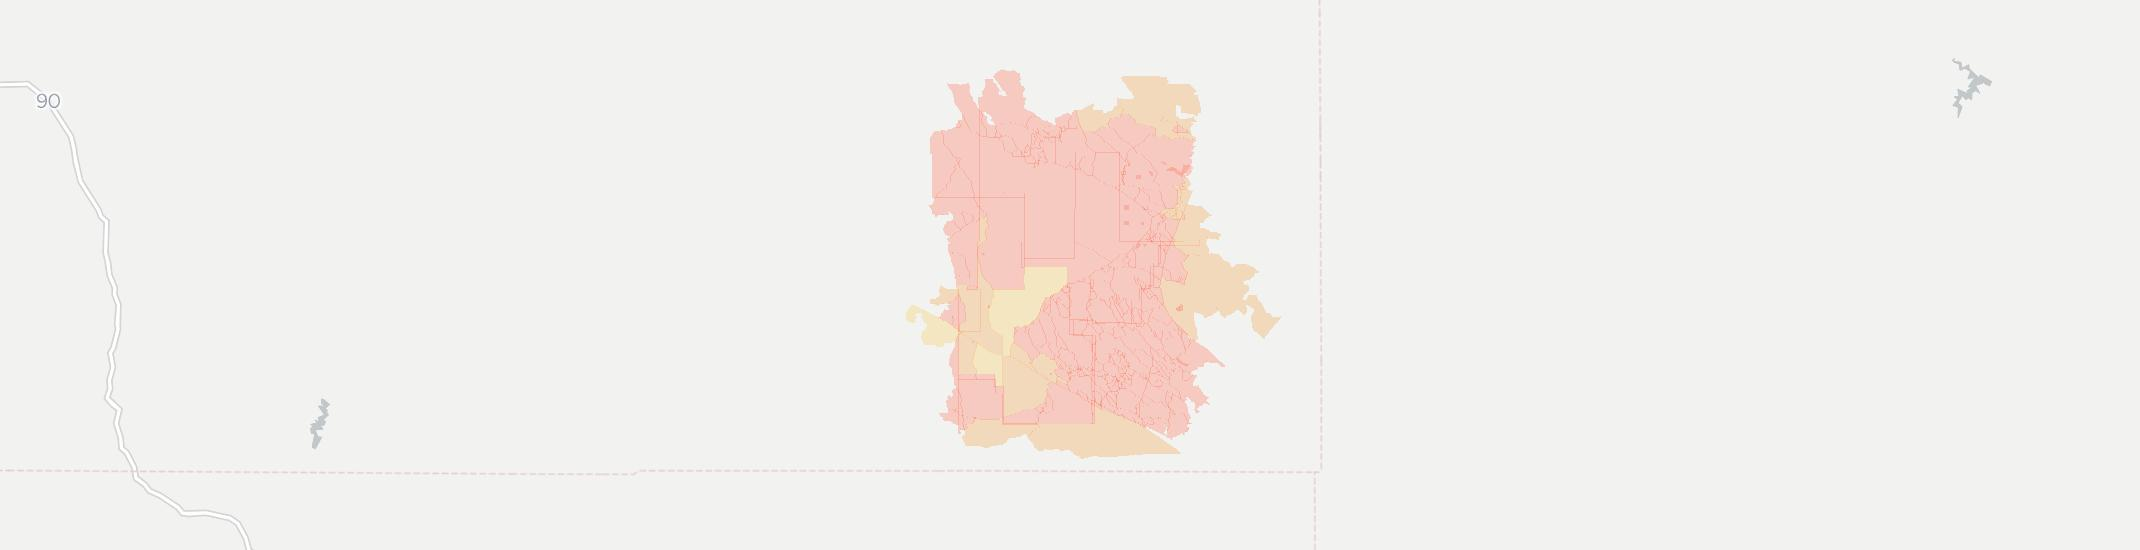 Hammond Internet Competition Map. Click for interactive map.